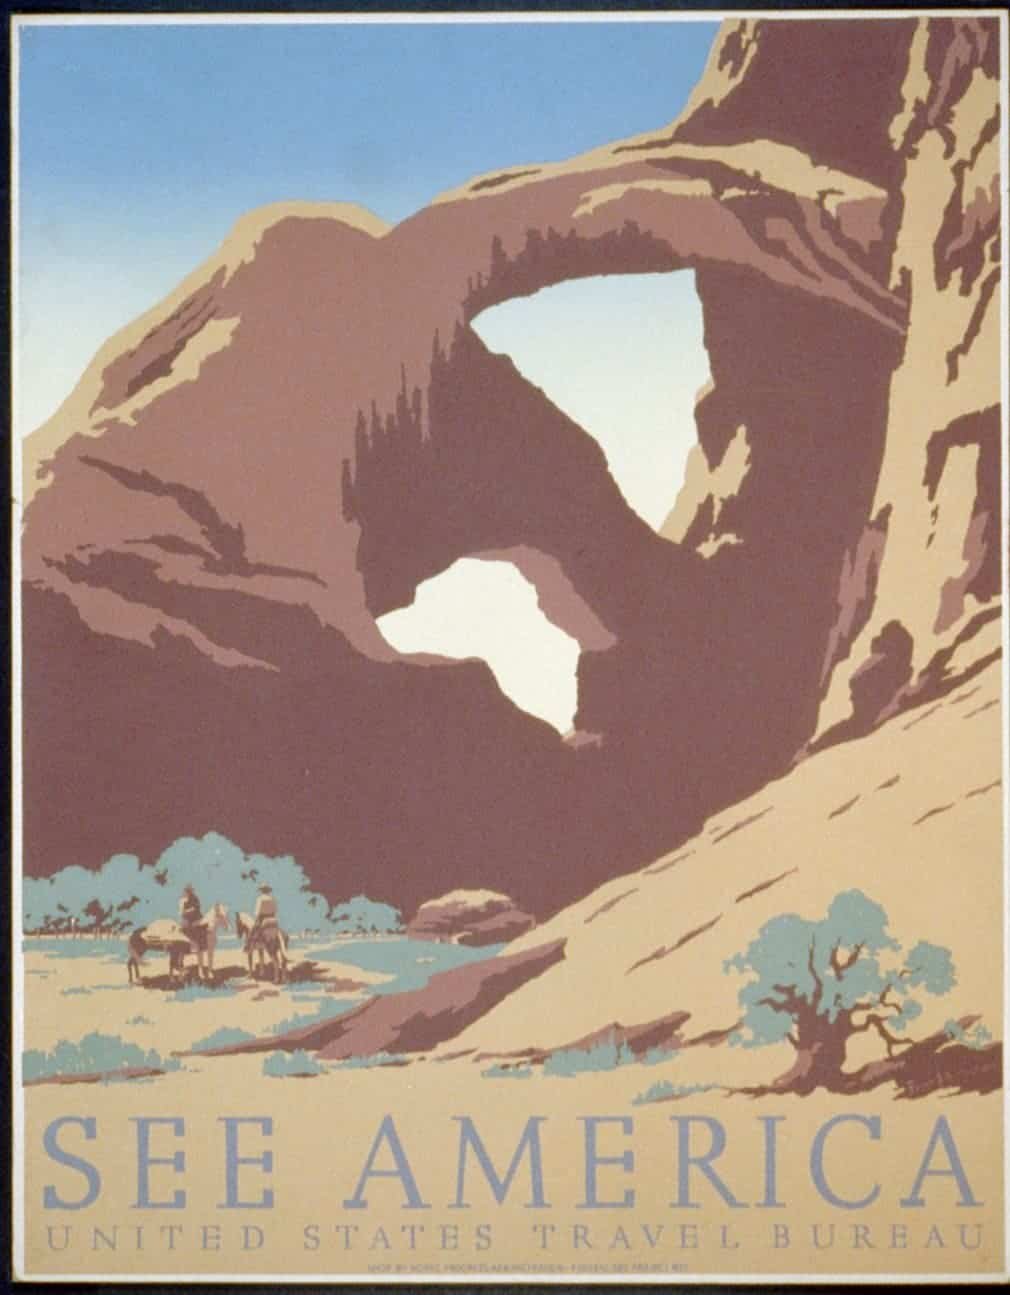 The Arches national park in Utah, late 1930s.